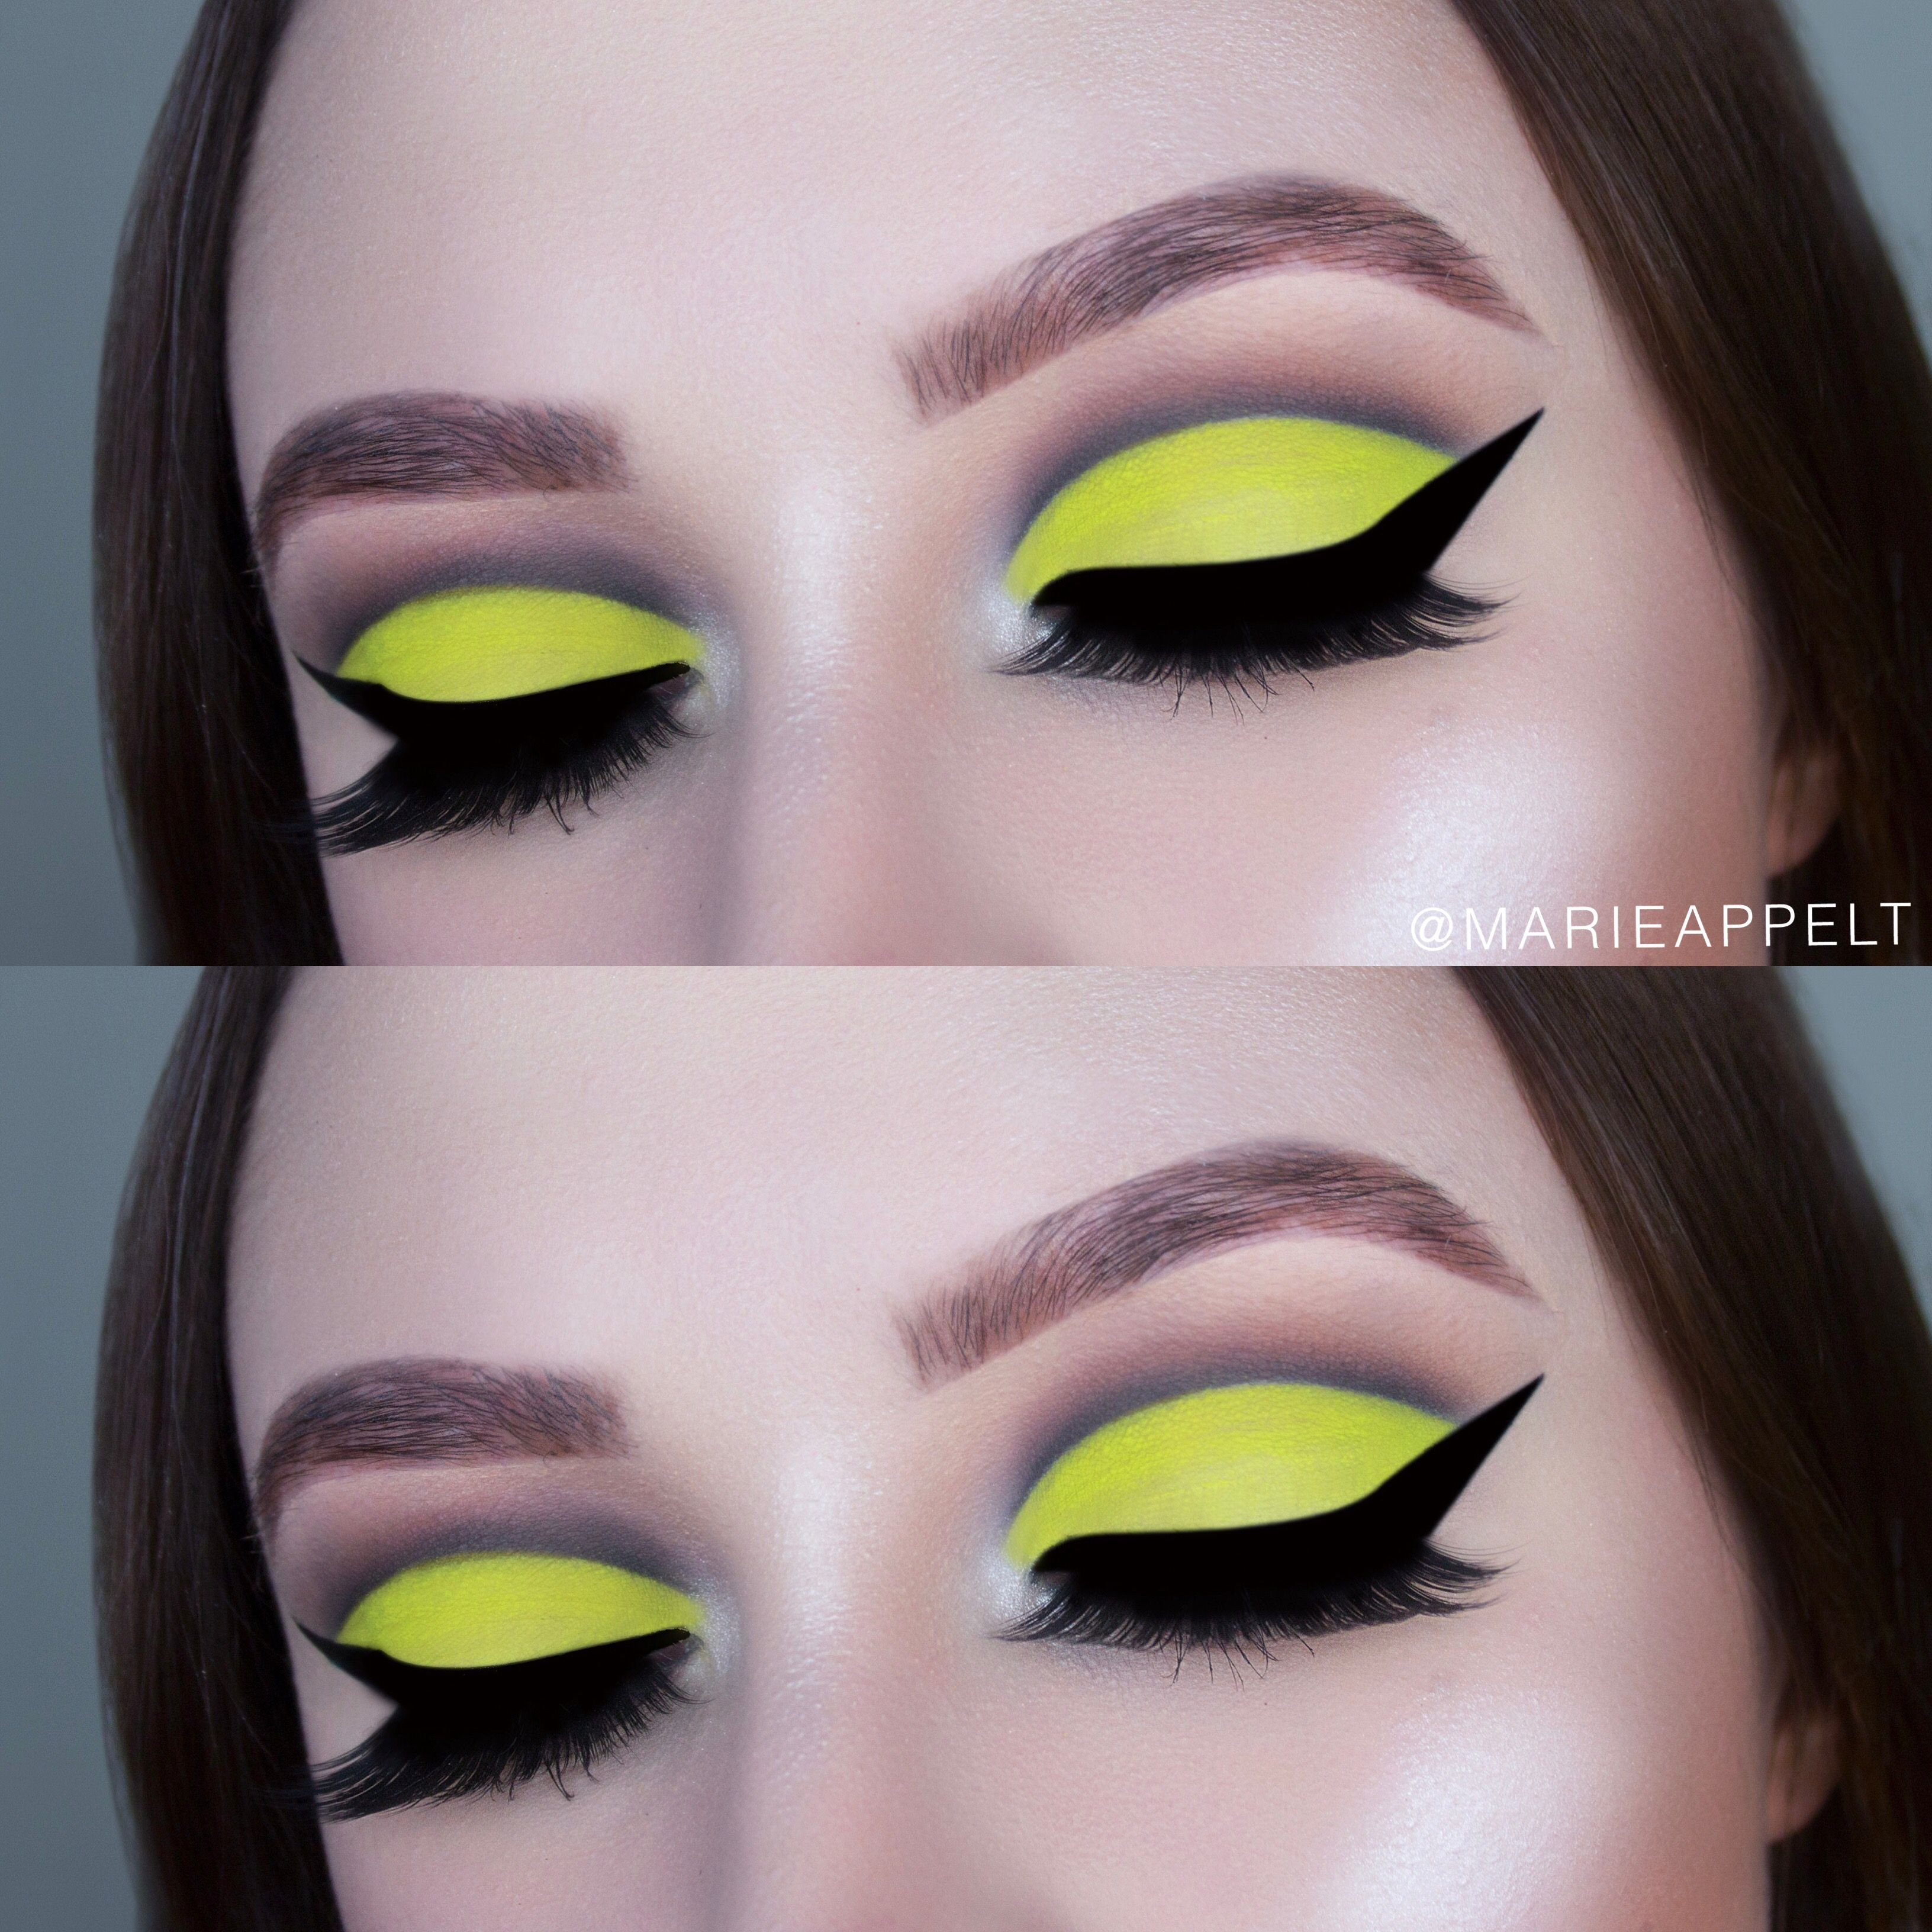 Neon cut crease makeup tutorial abh prism palette makeup look neon cut crease makeup tutorial abh prism palette makeup look makeup look baditri Images